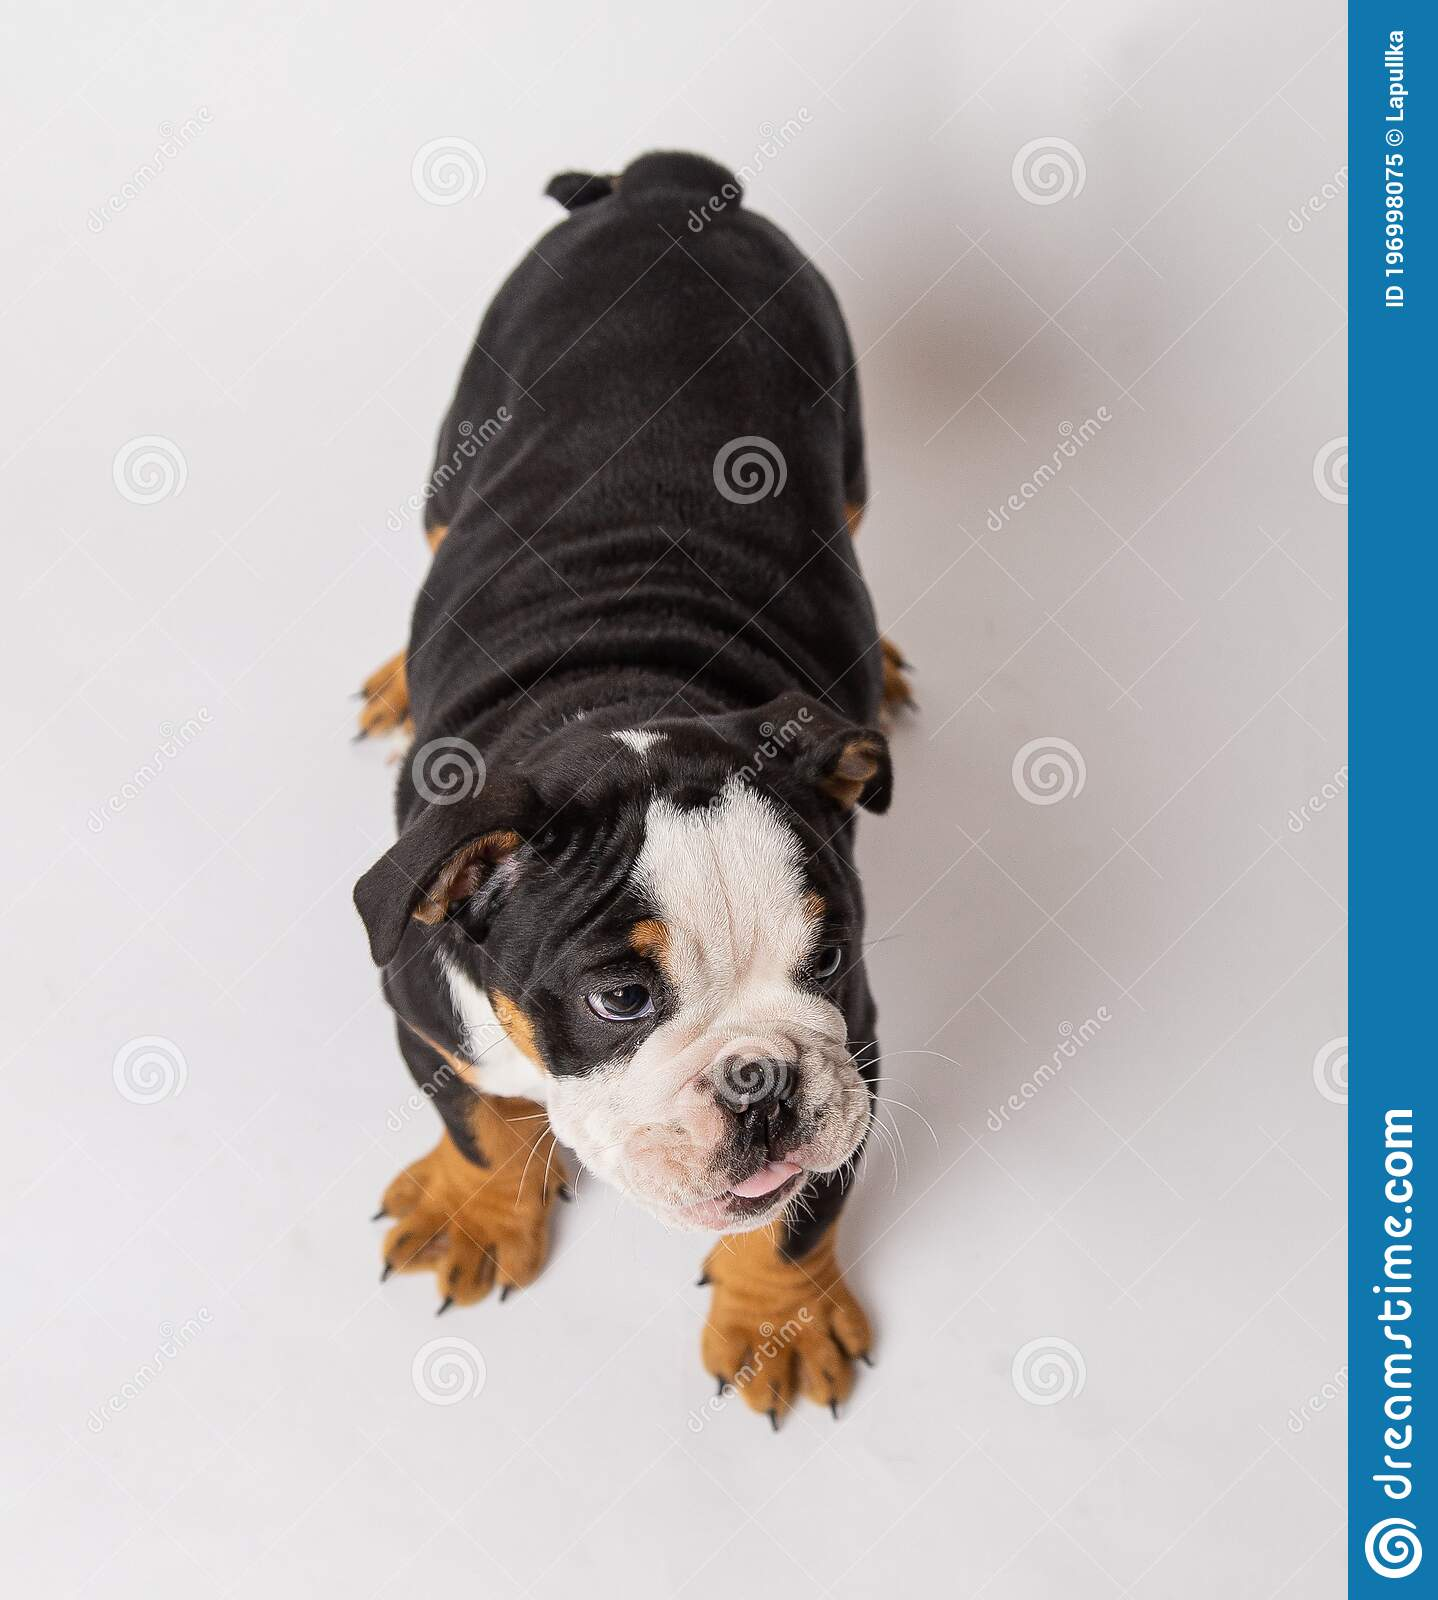 English Bulldog Puppy Black And White Front In Studio Stock Image Image Of Kennel Hefty 196998075